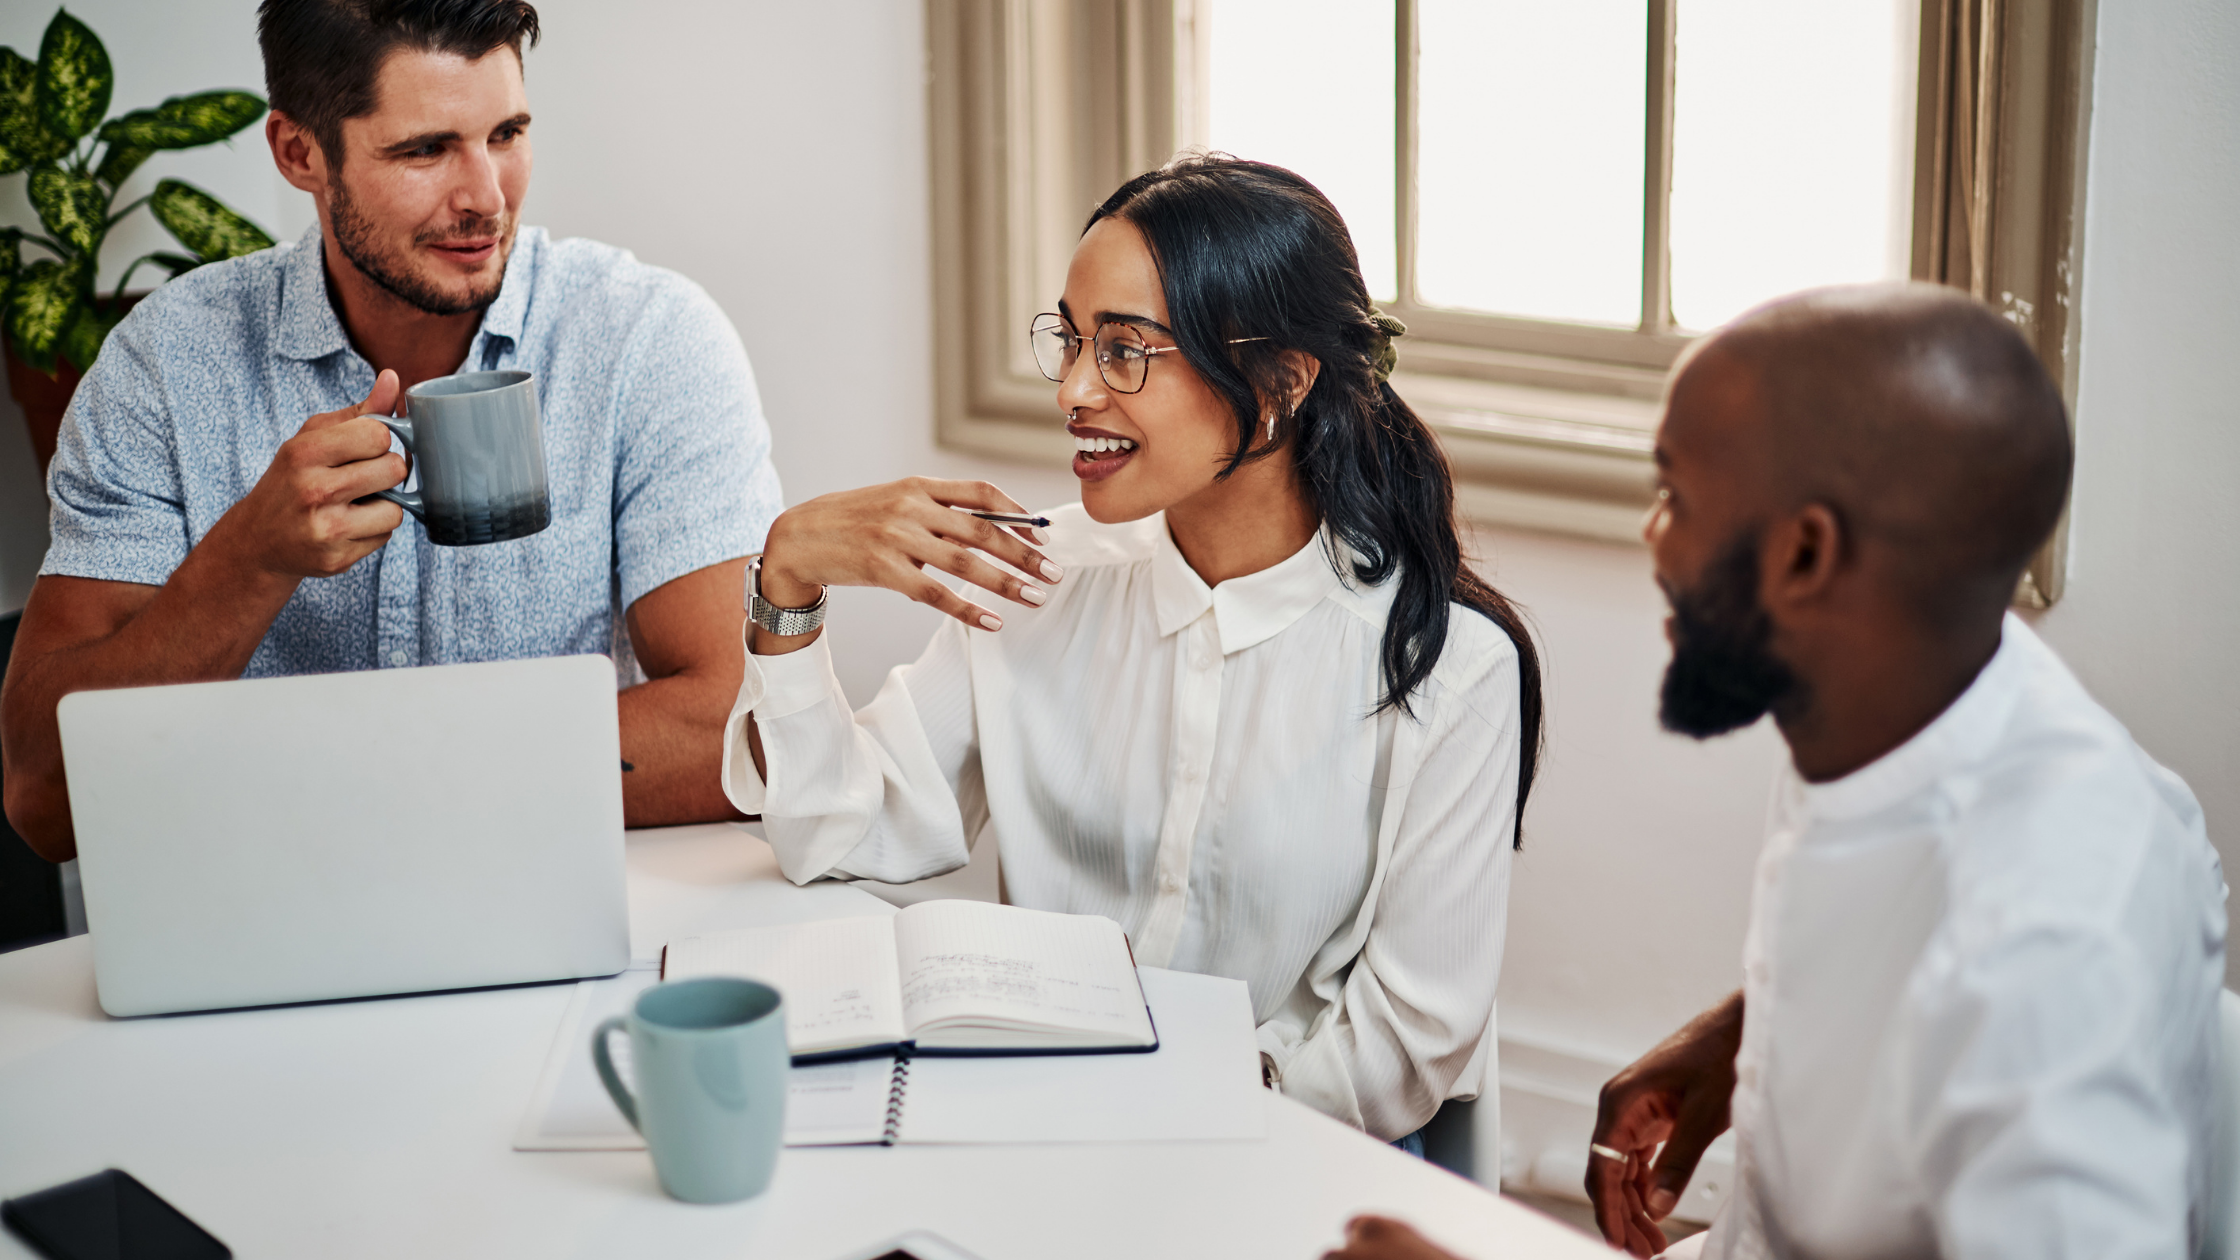 5 essential steps for building an exceptional company